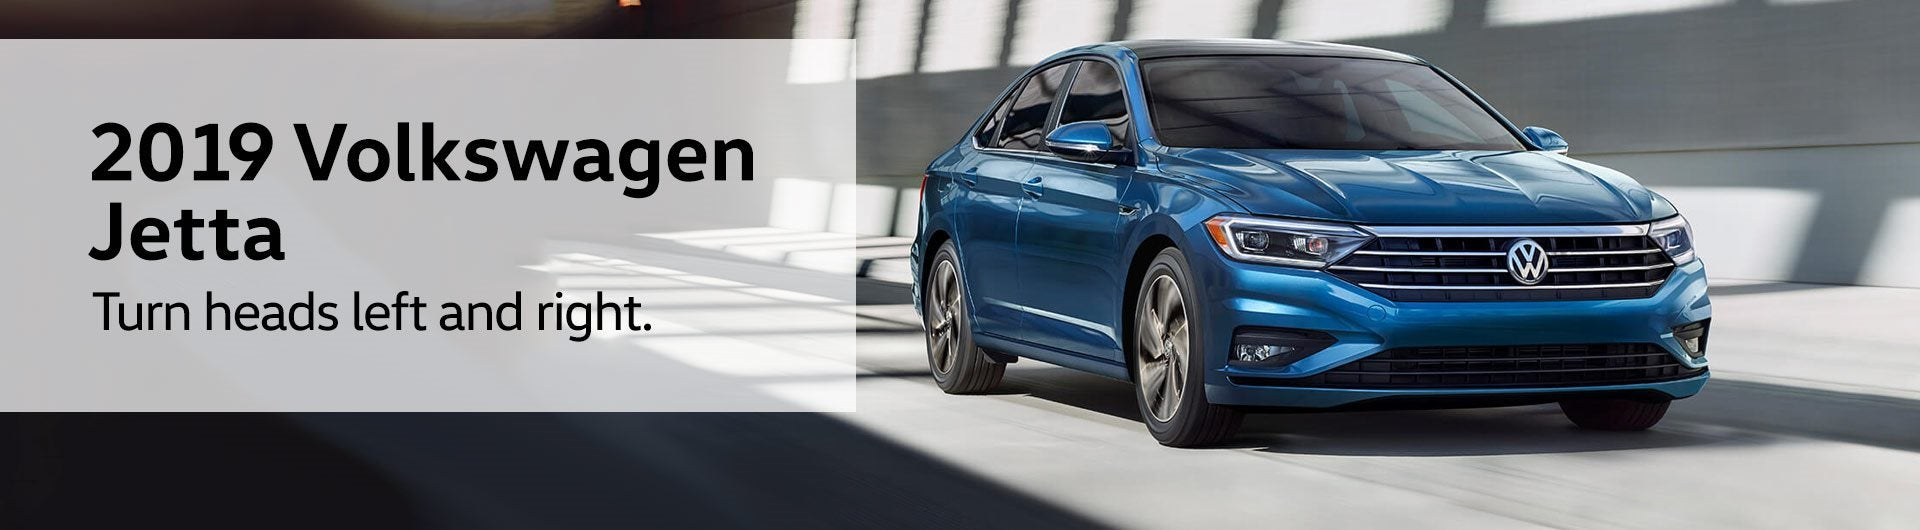 2019 Volkswagen Jetta Dealer in Gaithersburg near Rockville